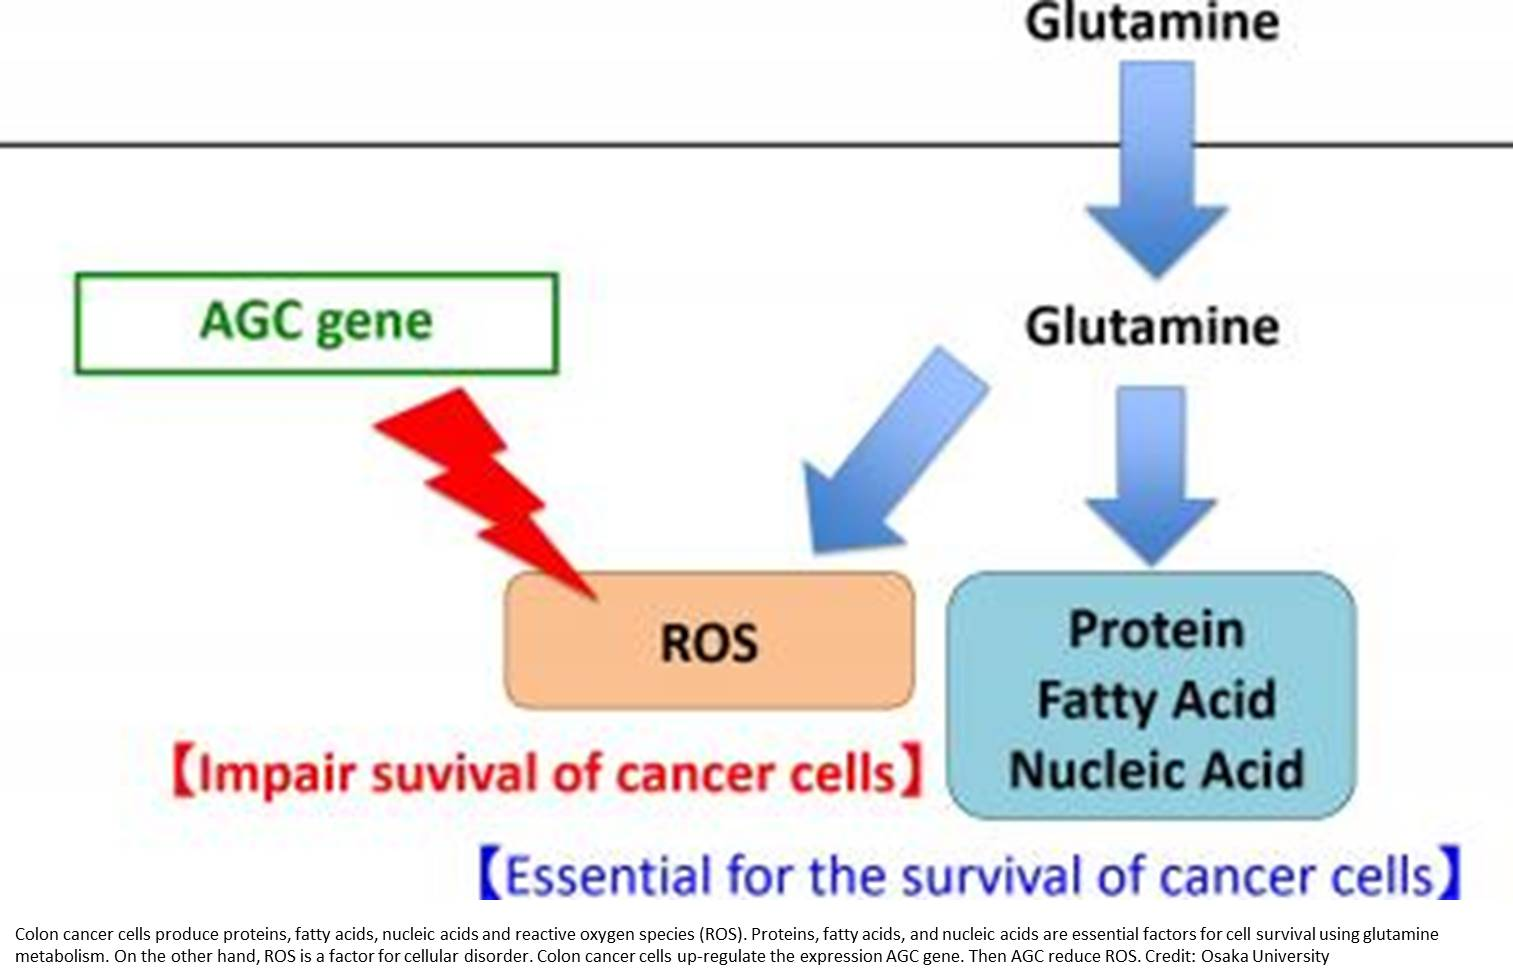 The importance of the glutamine metabolism in colon cancer